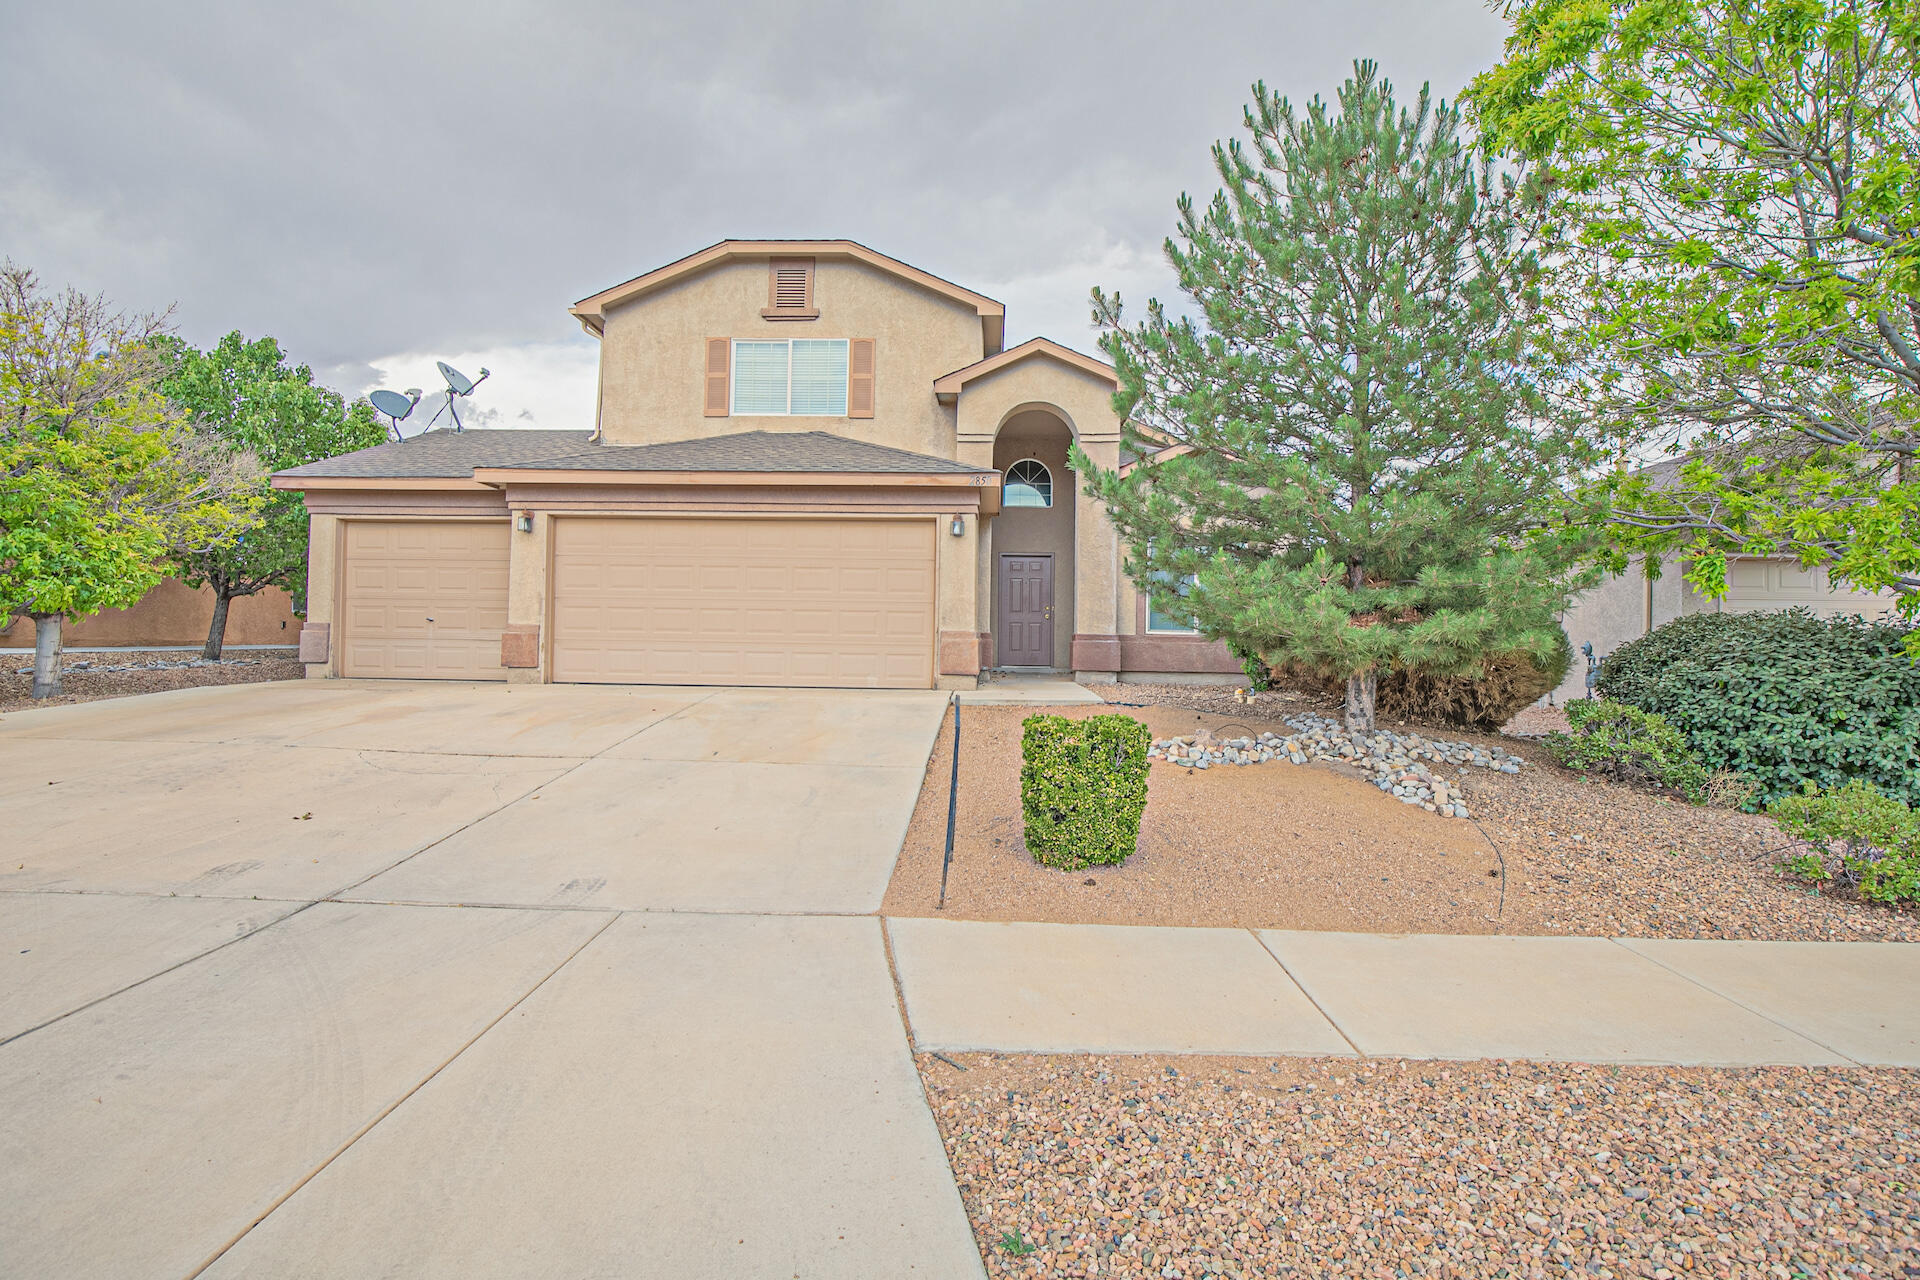 Welcome home!! Freshly painted 4 bedroom 3 bath home with a 3 car garage near I-25, Facebook, Walmart, restaurants and the movie theater. Nice open floor plan with the master bedroom on the main floor. Plenty of room for your growing family. There is a walking path, park, dog park, tennis courts and basketball courts near by. Make your appointment today.